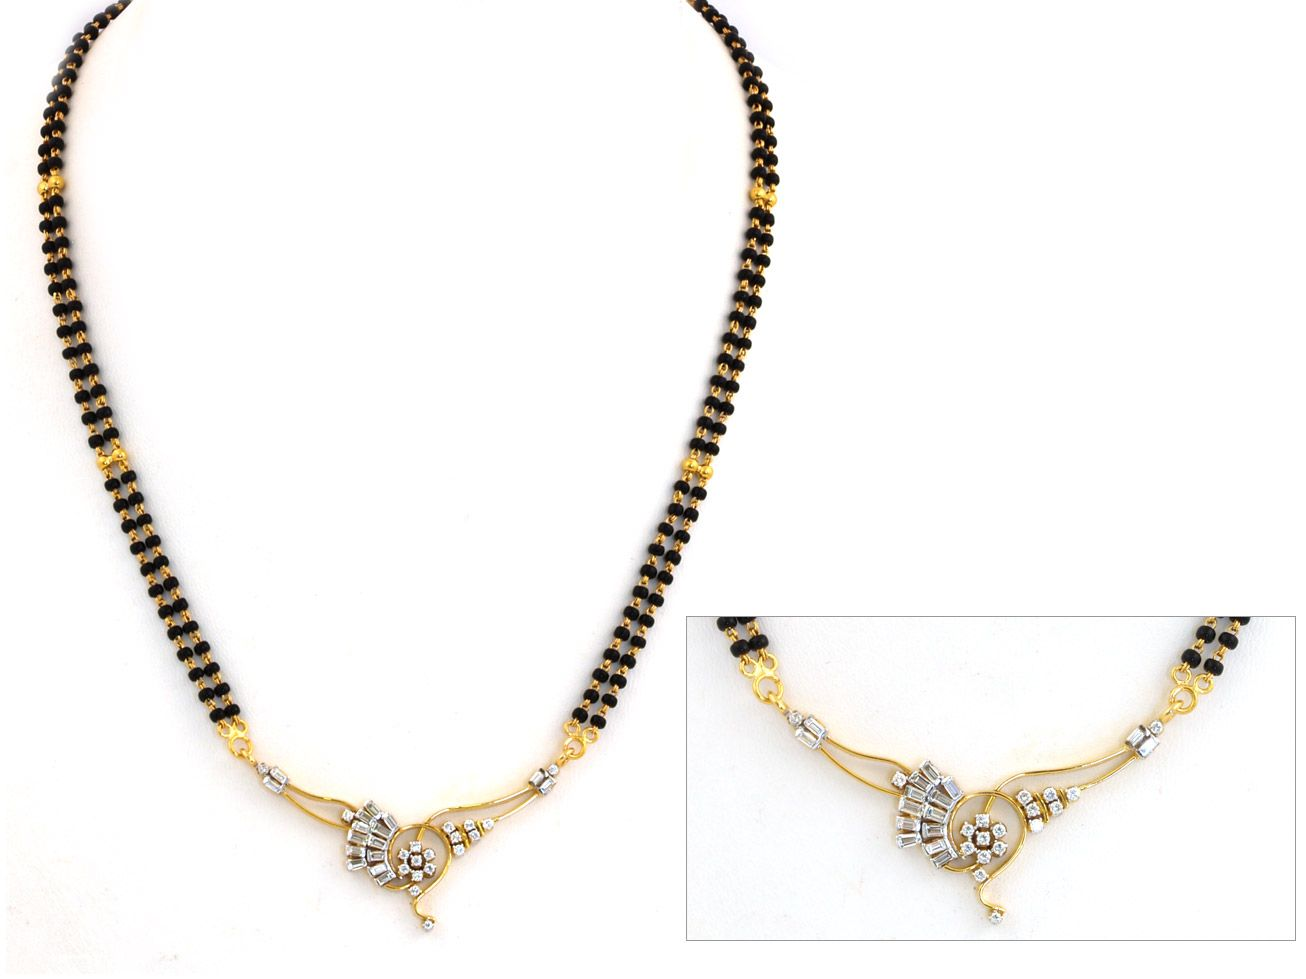 how many black beads should be there in mangalsutra